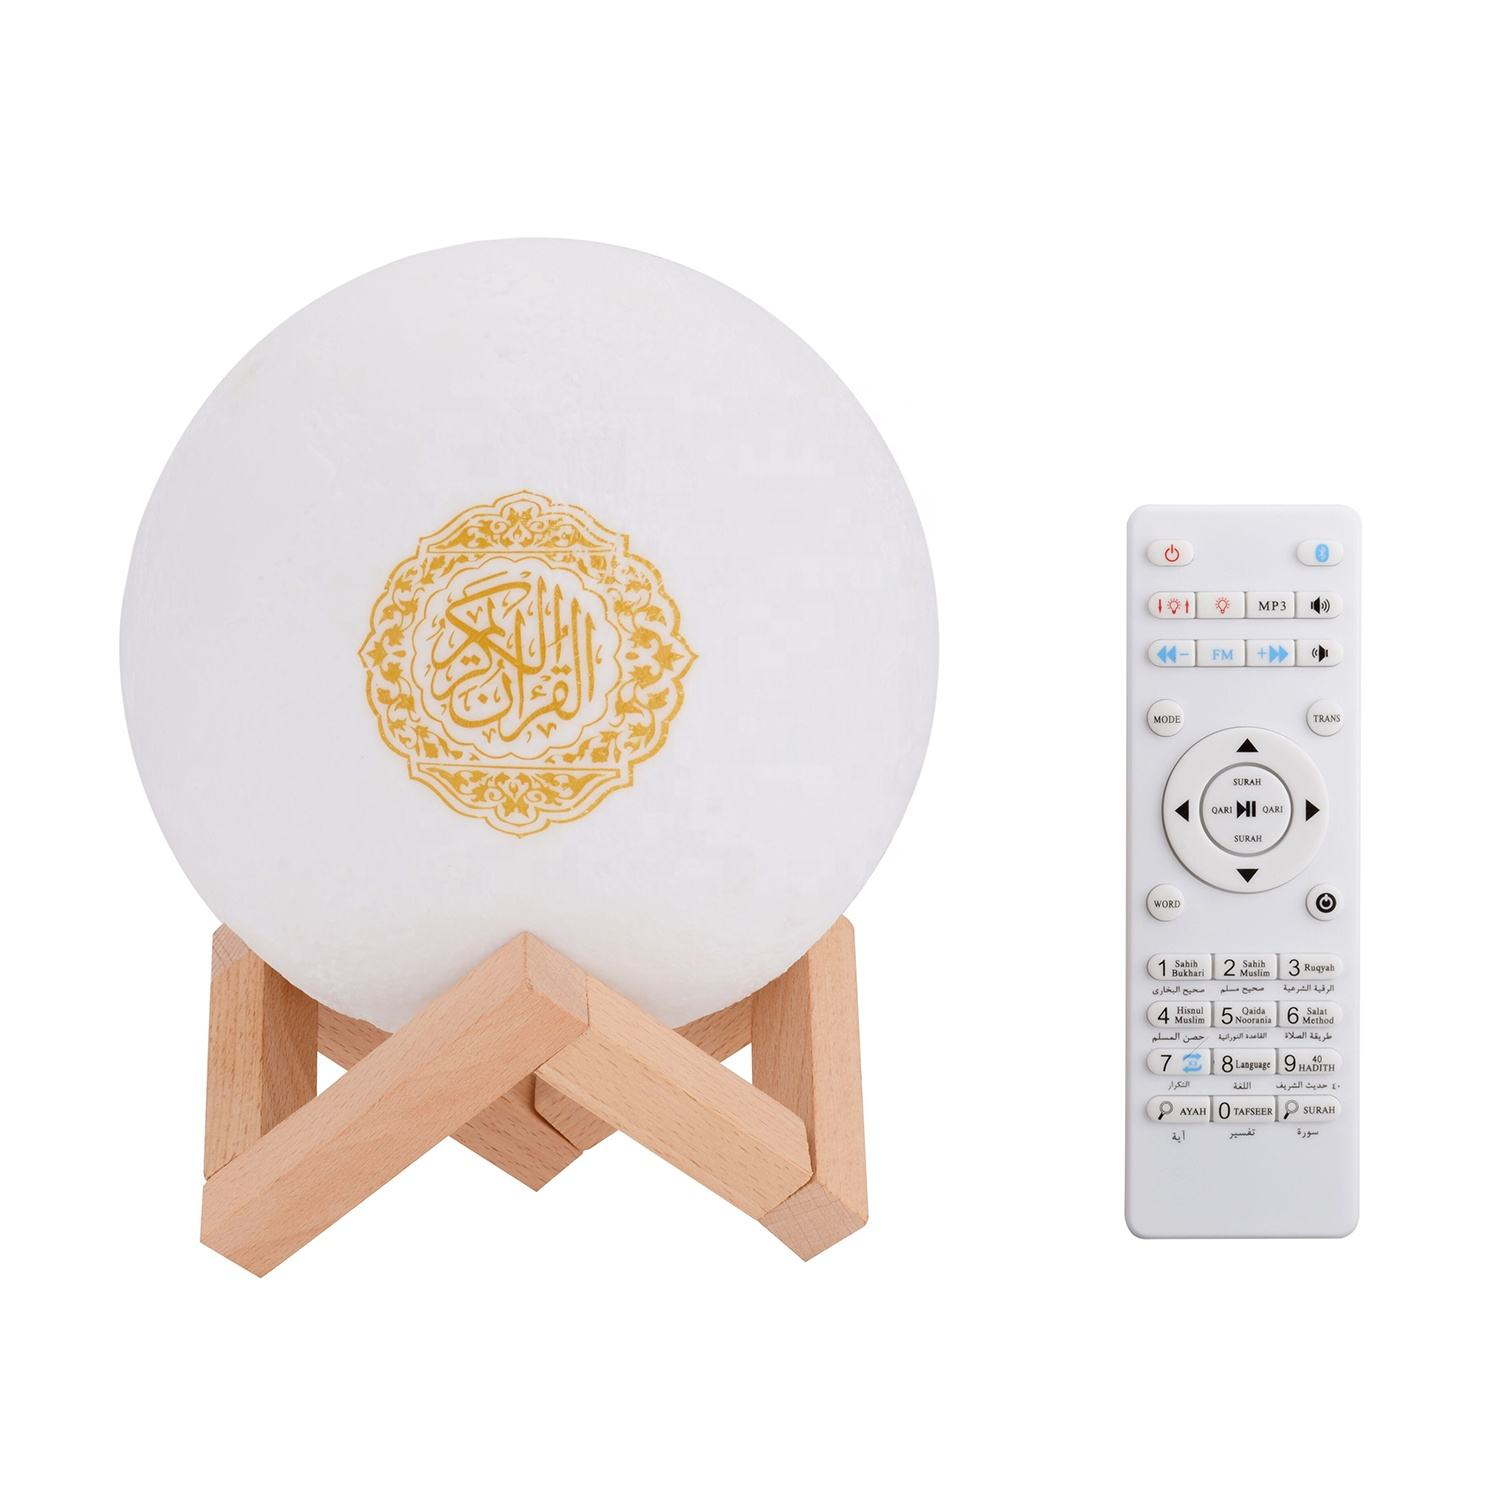 Mansur 16 colors 30 Famous Reciters 26 Translation Languages moon lamp quran speaker quran player